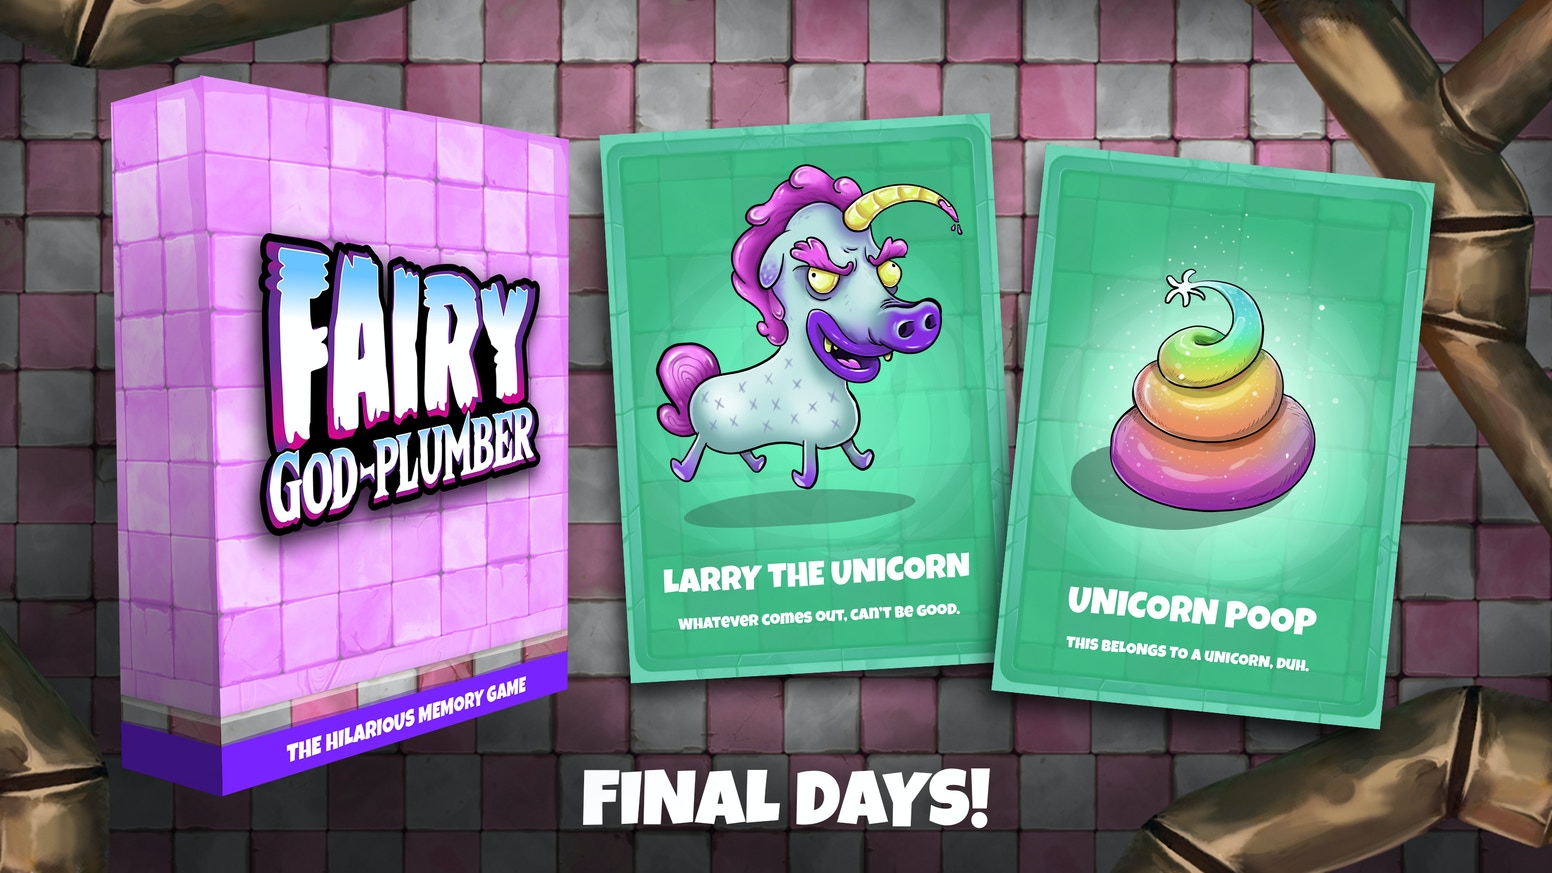 Become a Fairy God Plumber and help mythical beasts and magical residents unclog their toilets but beware of the hazards!